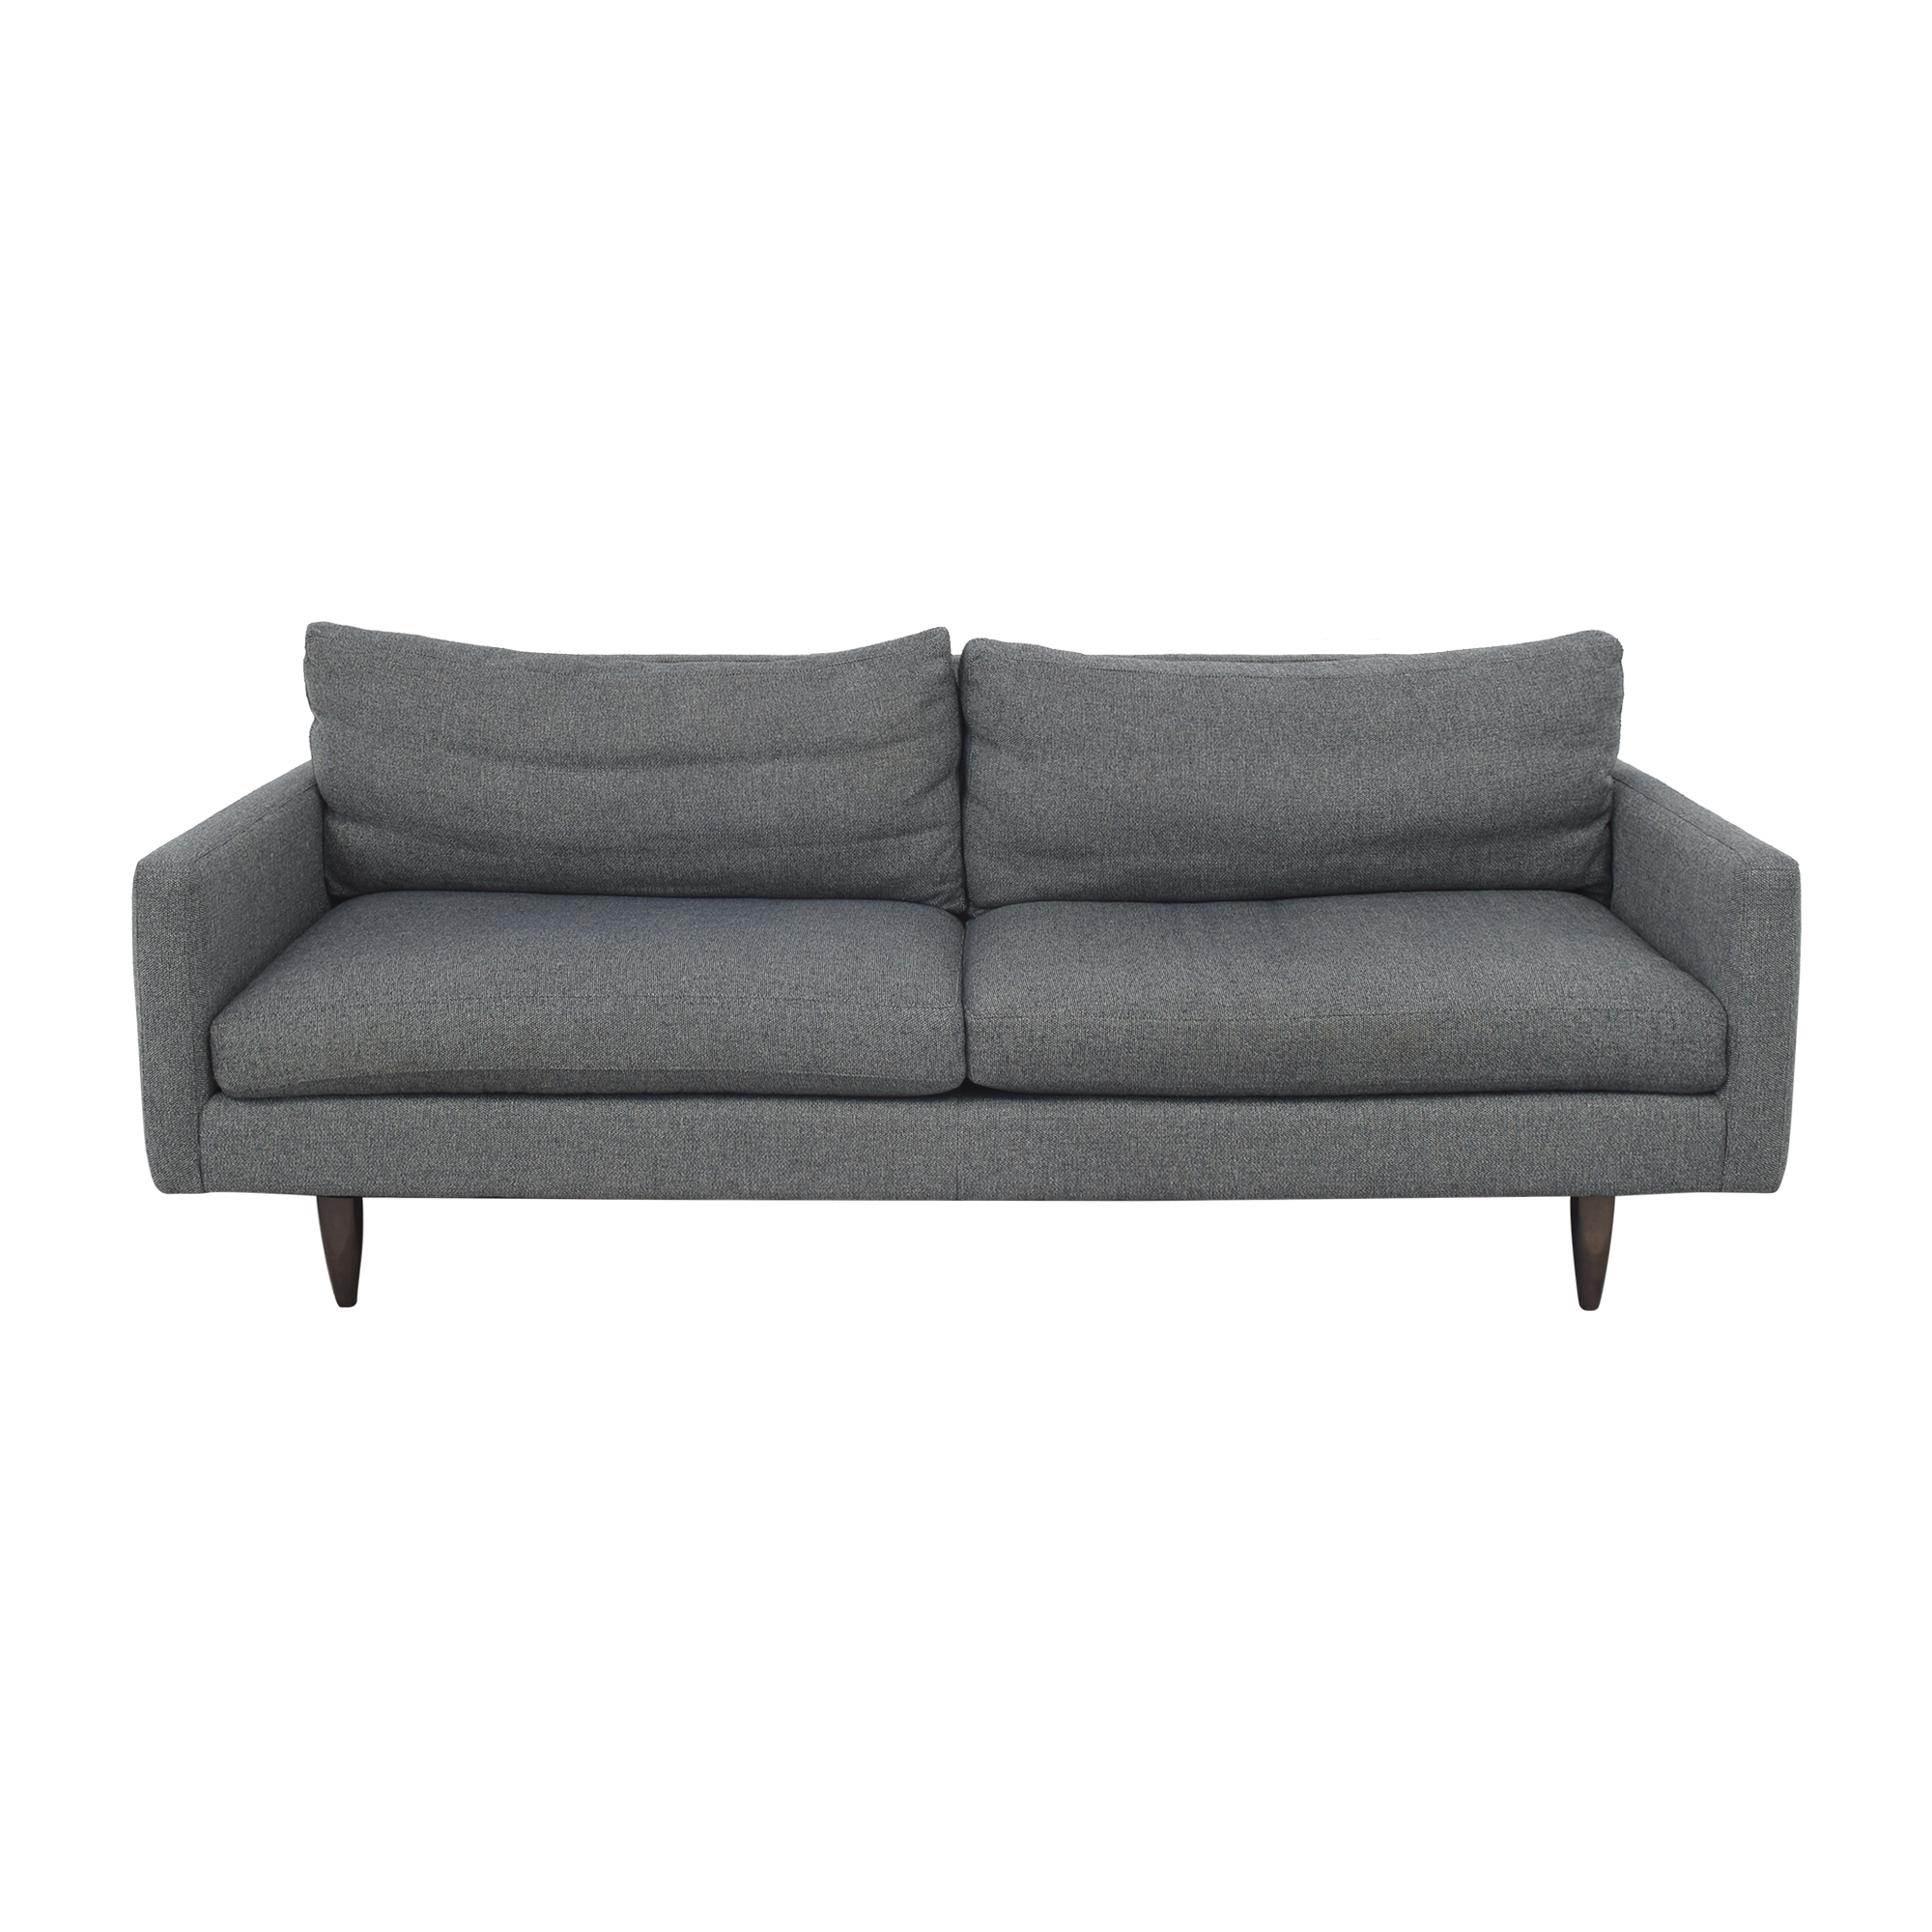 buy Room & Board Jasper Two Cushion Sofa Room & Board